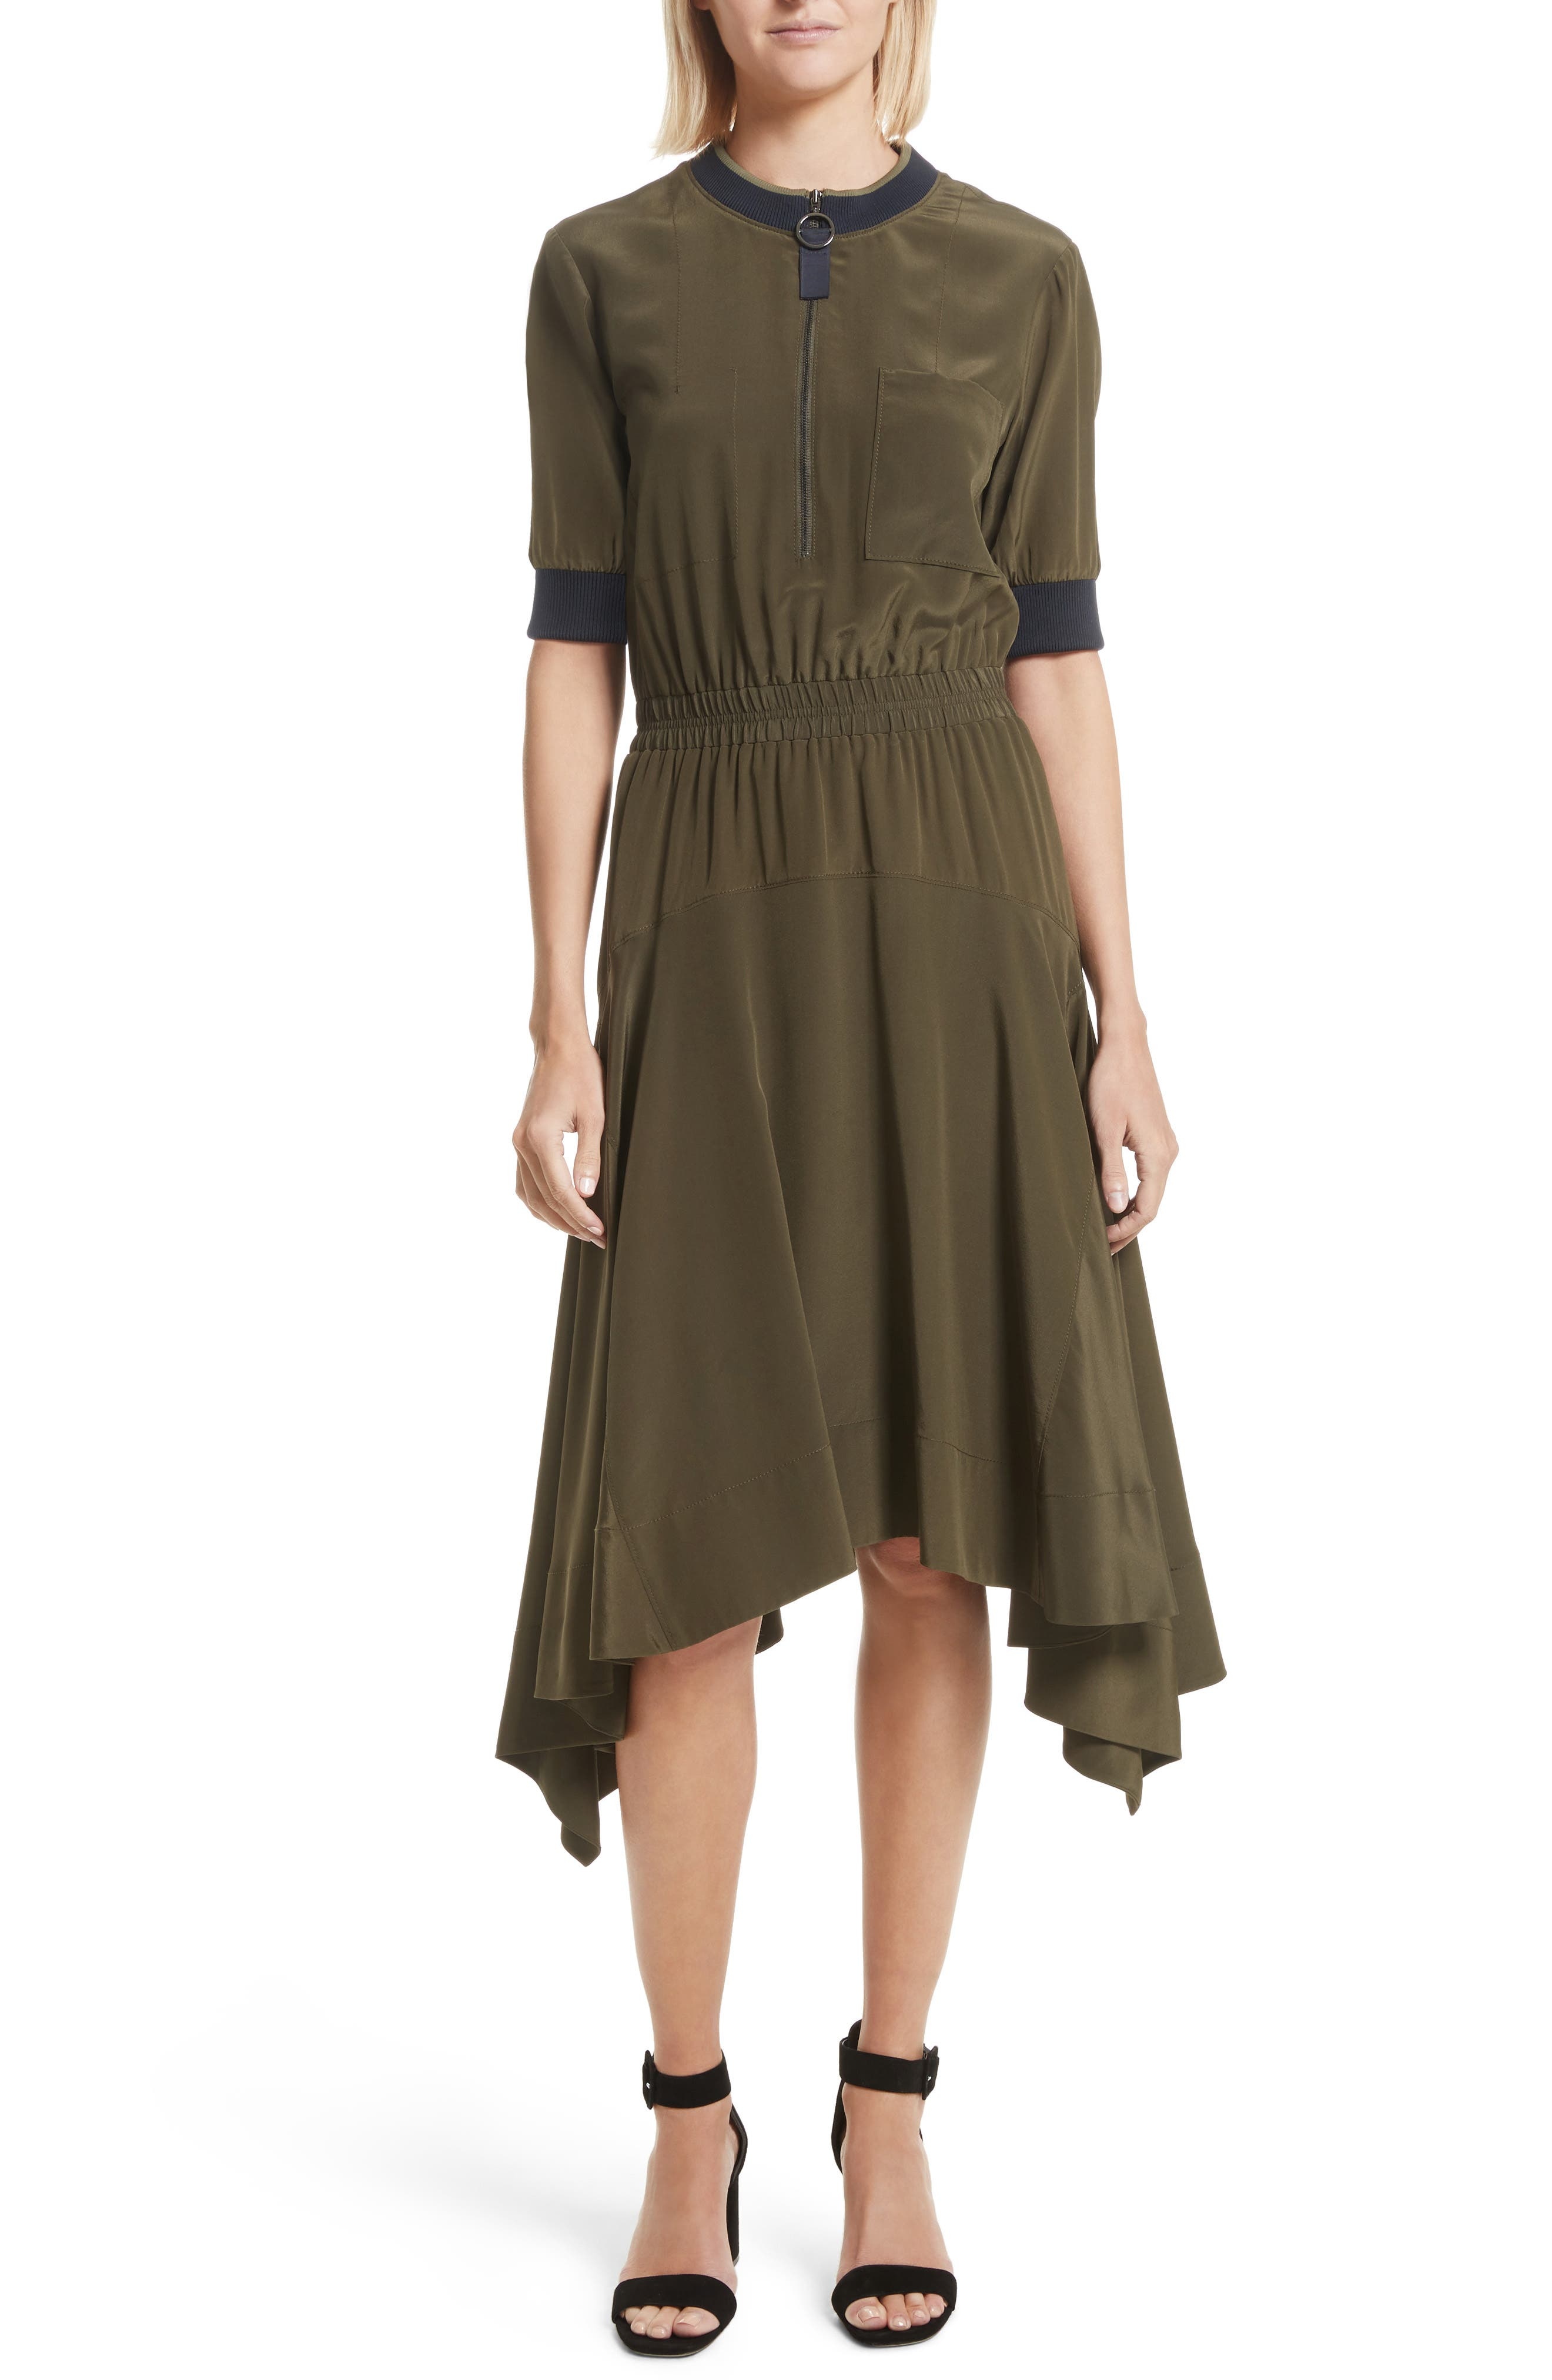 GREY Jason Wu Ribbed Detail Silk Handkerchief Dress